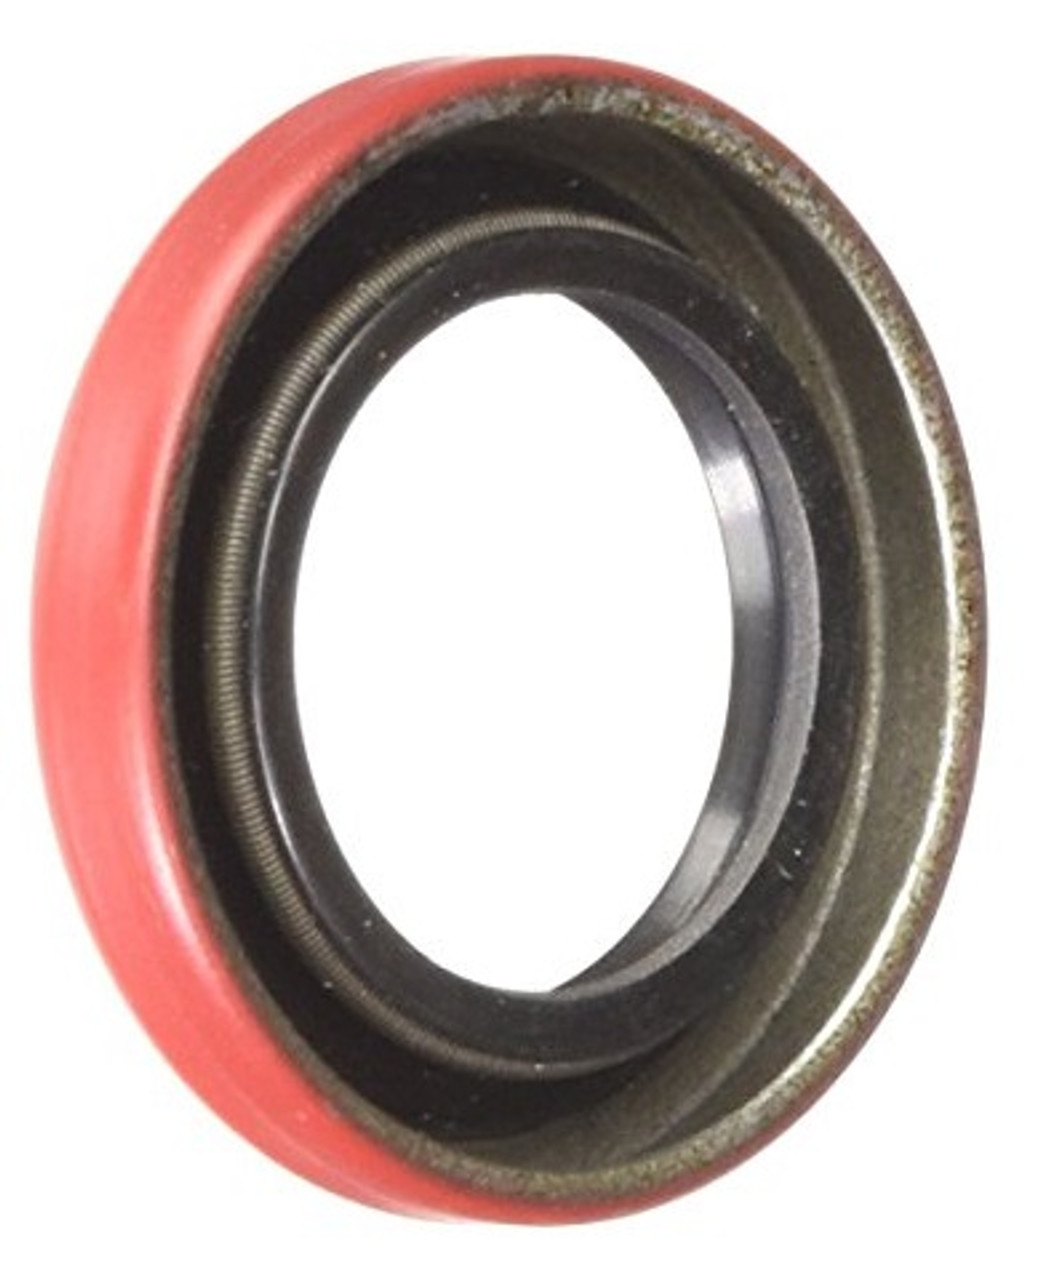 2 Pack 1.5 Inch Shaft 480190 National Equivalent Oil Seal by TCM